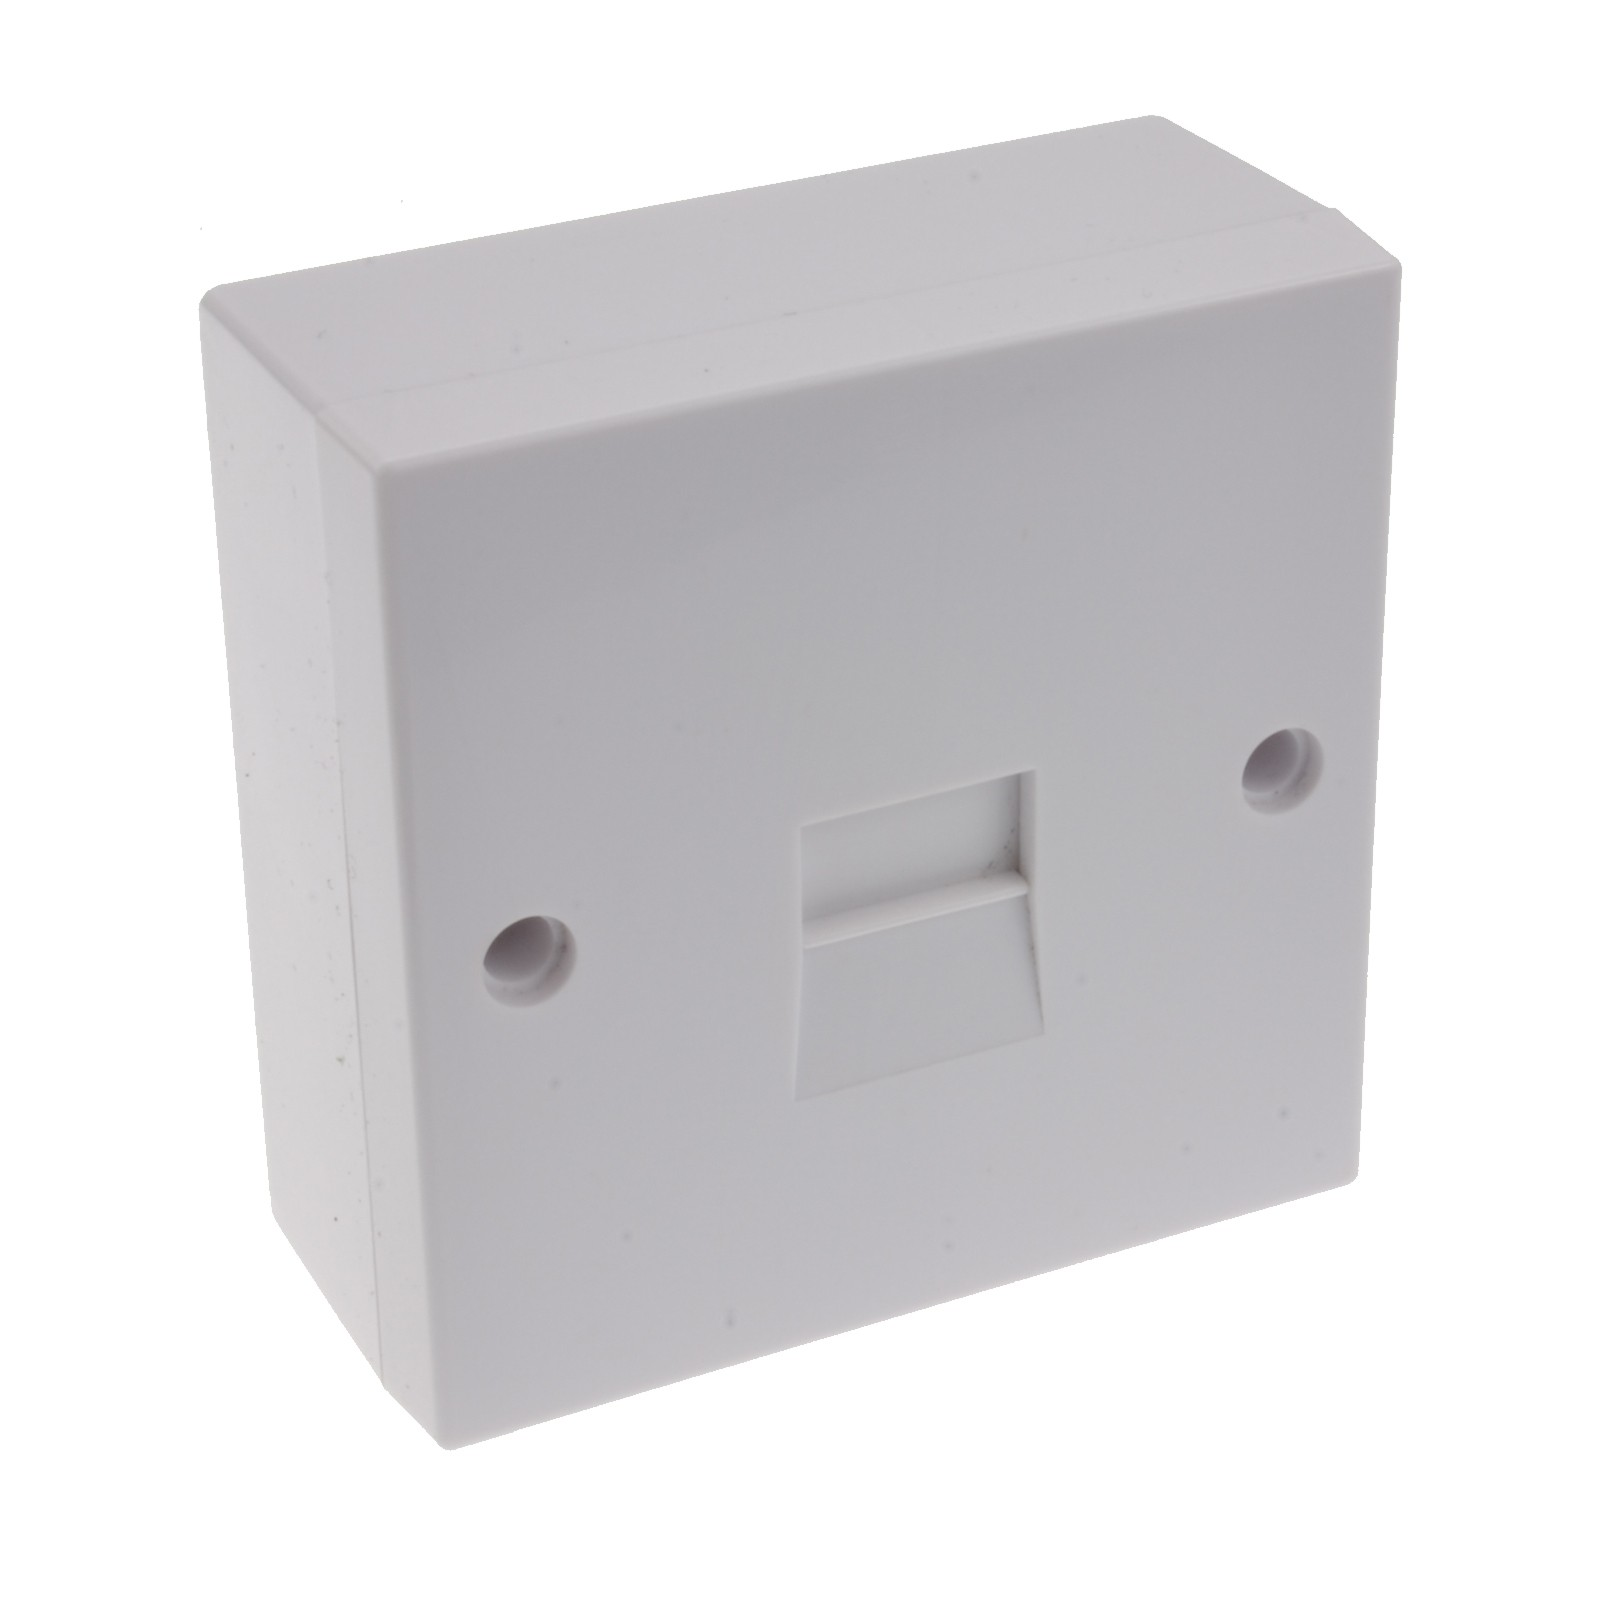 hight resolution of telephone secondary idc punch 2 3a phone line socket with back box